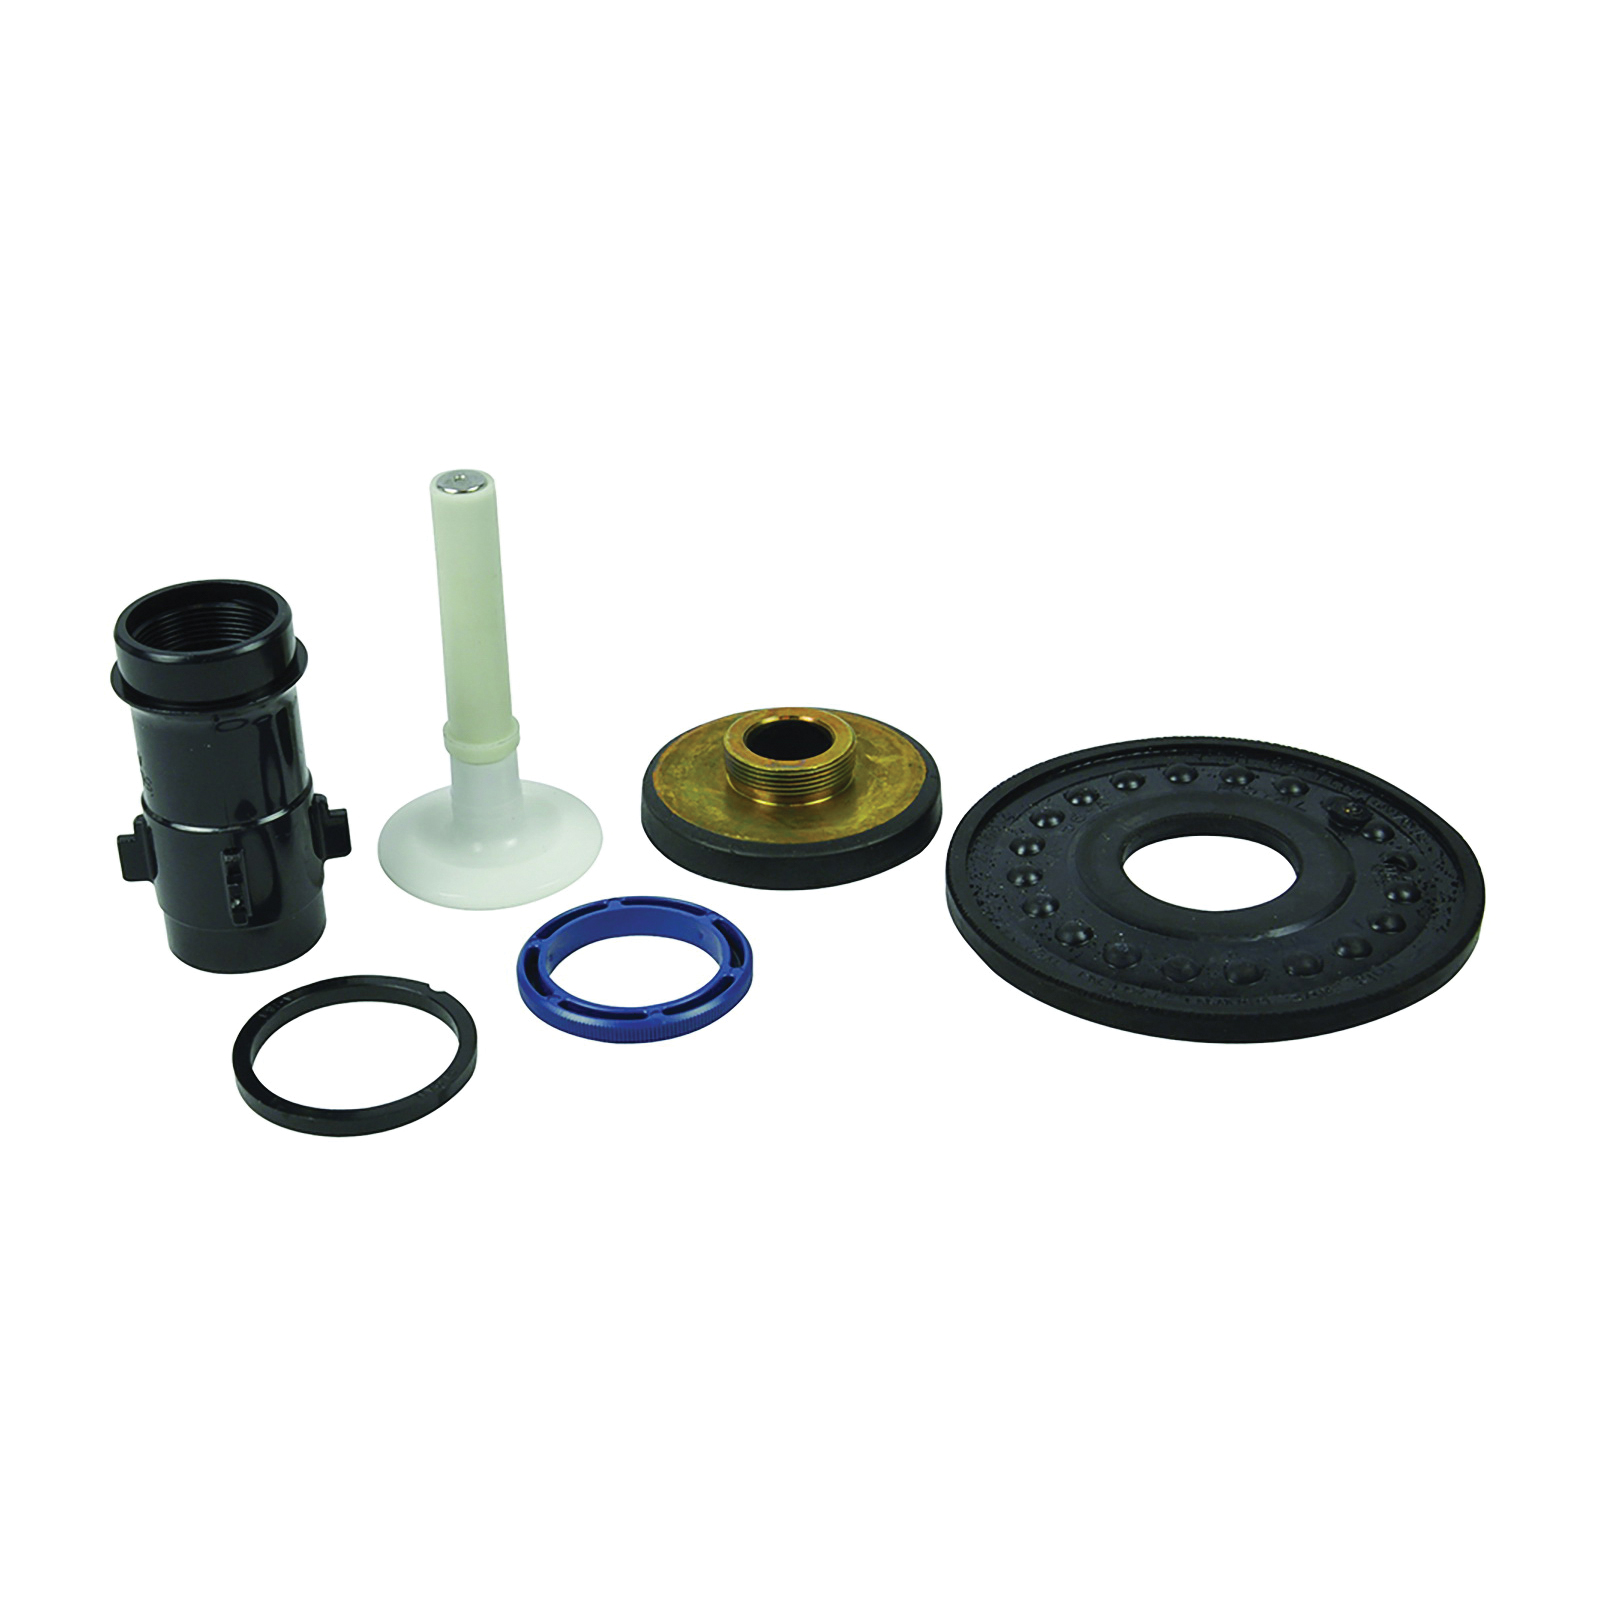 Picture of Danco 37073 Water Saver Kit, Plastic/Rubber, Black, For: Regal 3.5 gpf Water Closet Flushometers